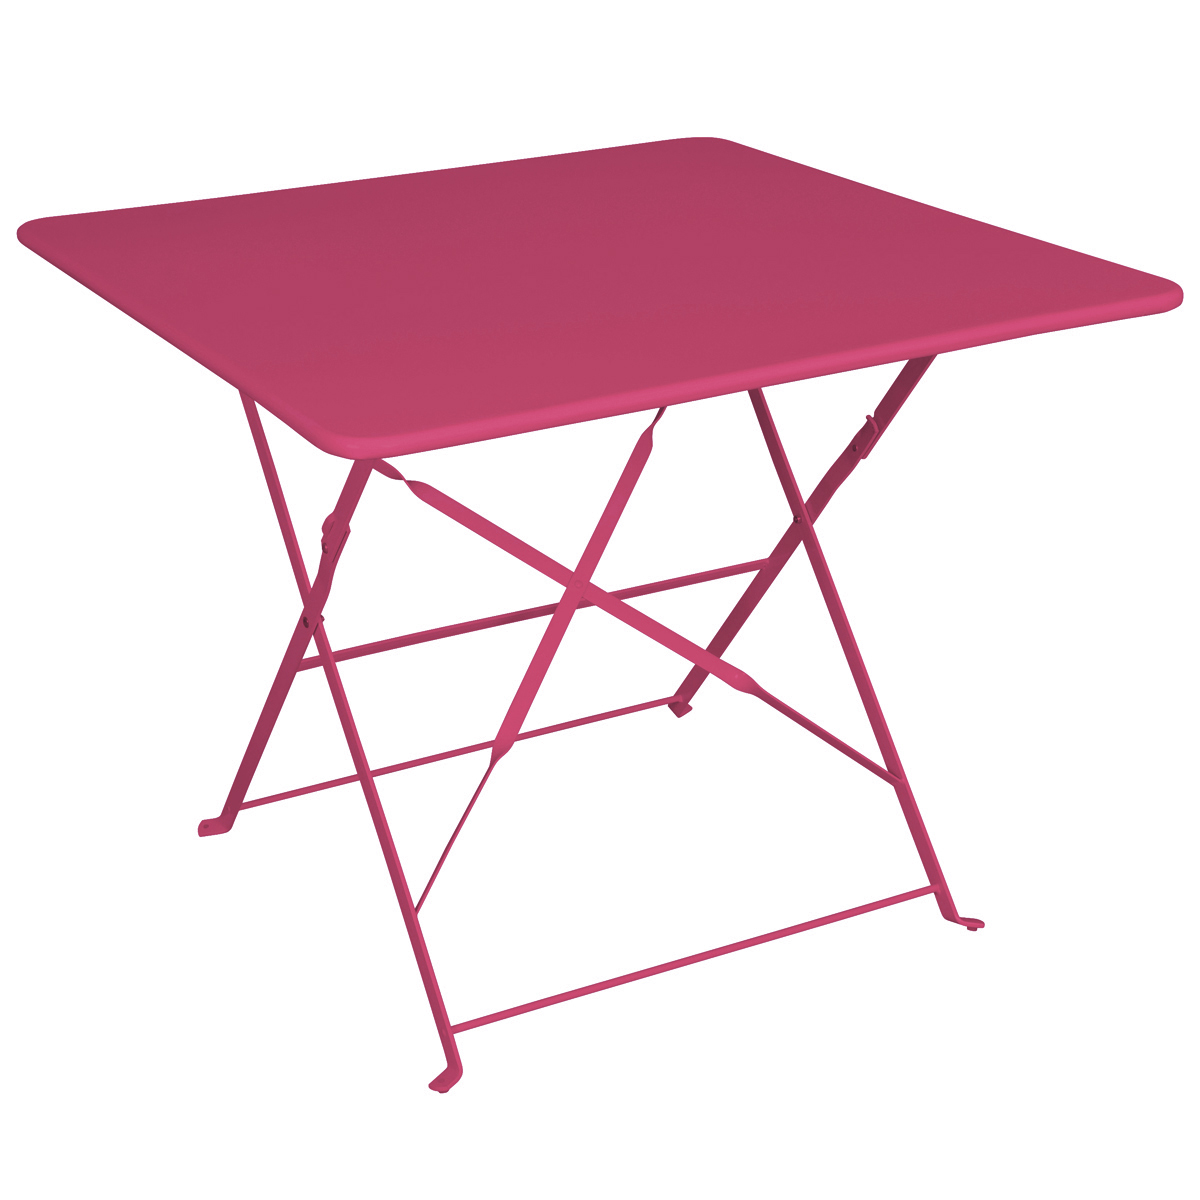 Table jardin metal pliante - Table pliante aluminium ...